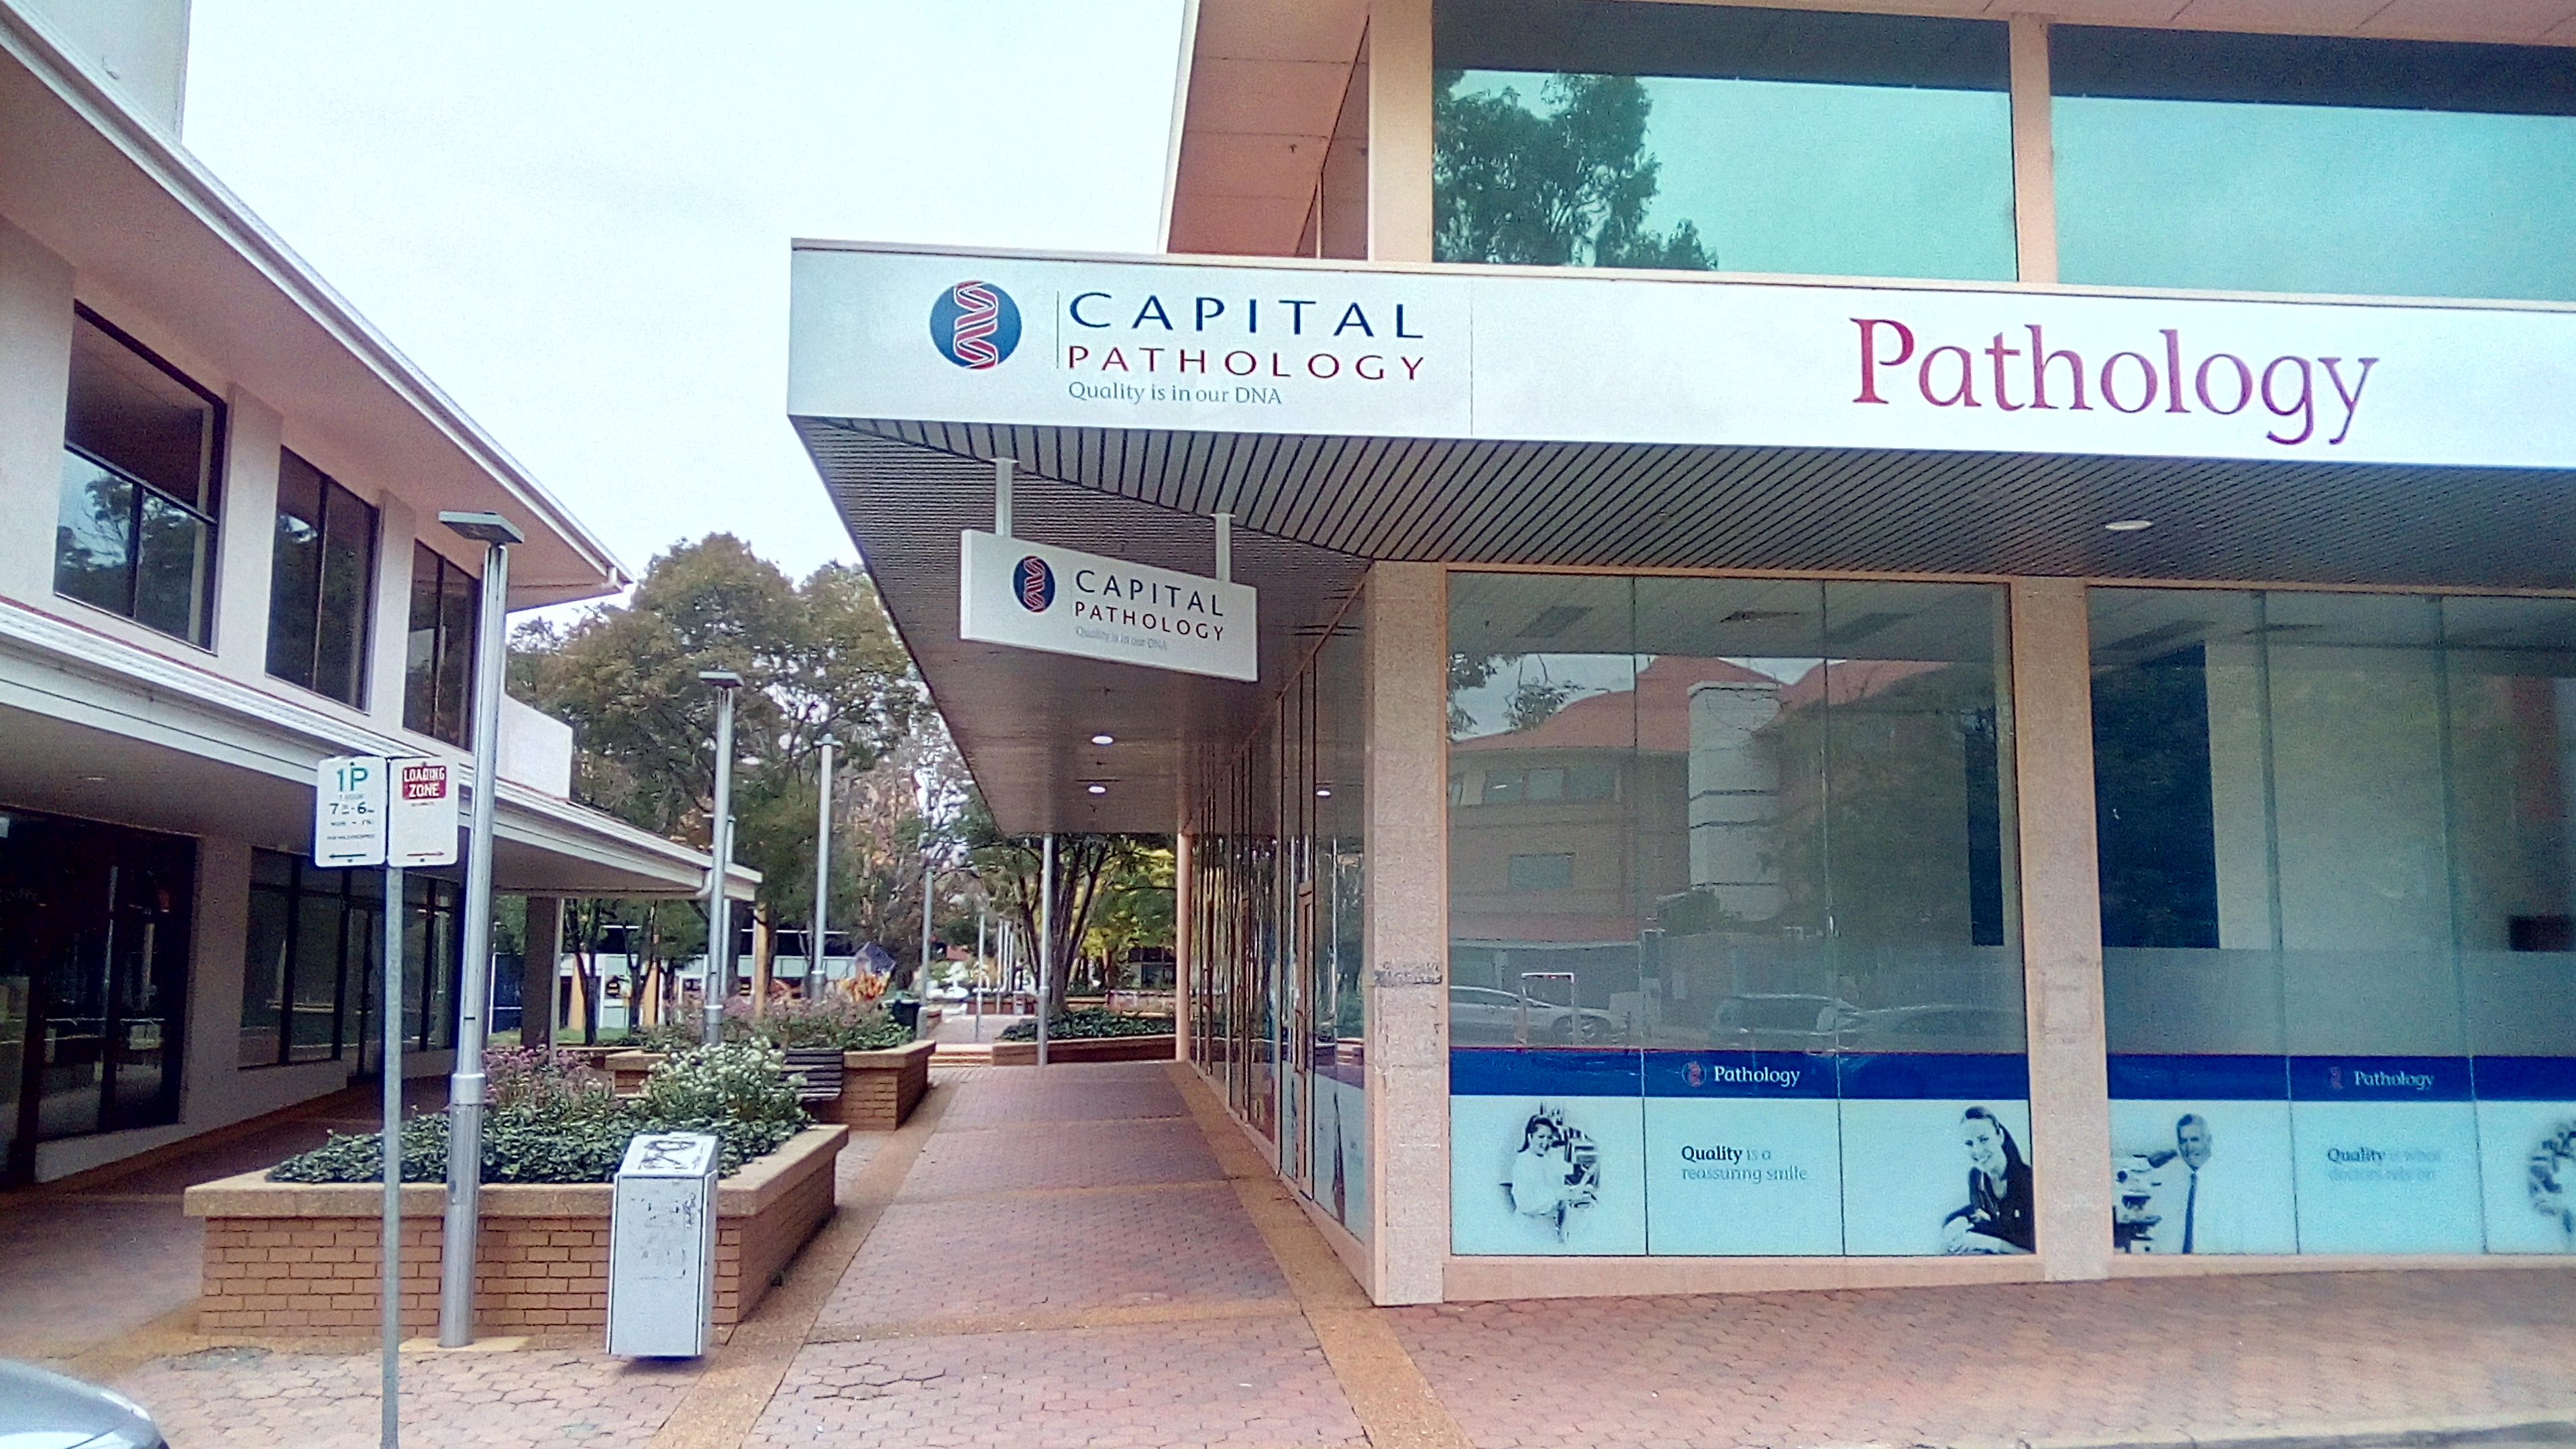 Shop Fronts & Building Signs